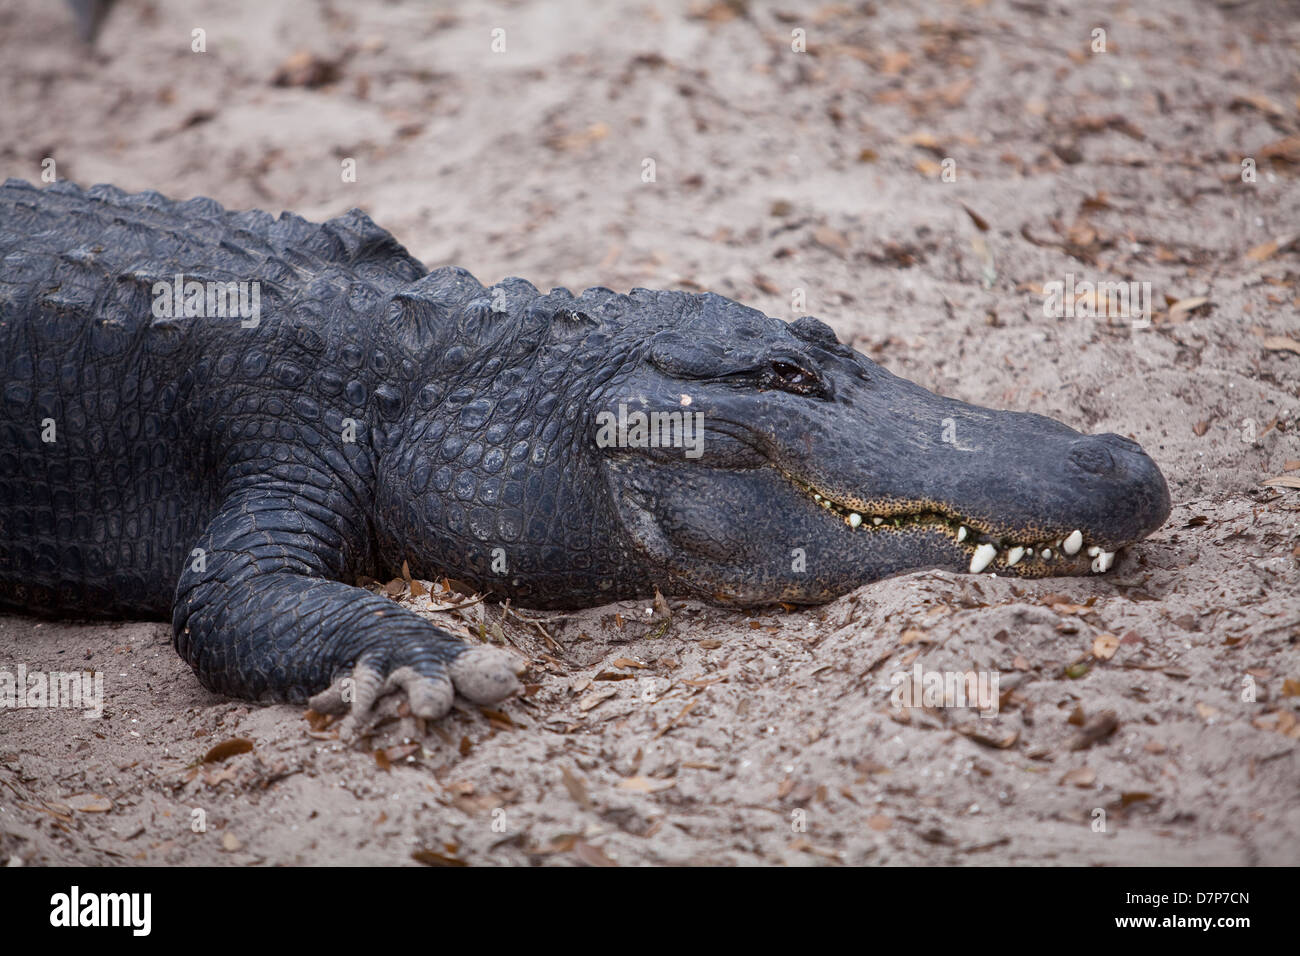 An american alligator is seen at Alligator farm Zoological Park in St. Augustine, Florida - Stock Image